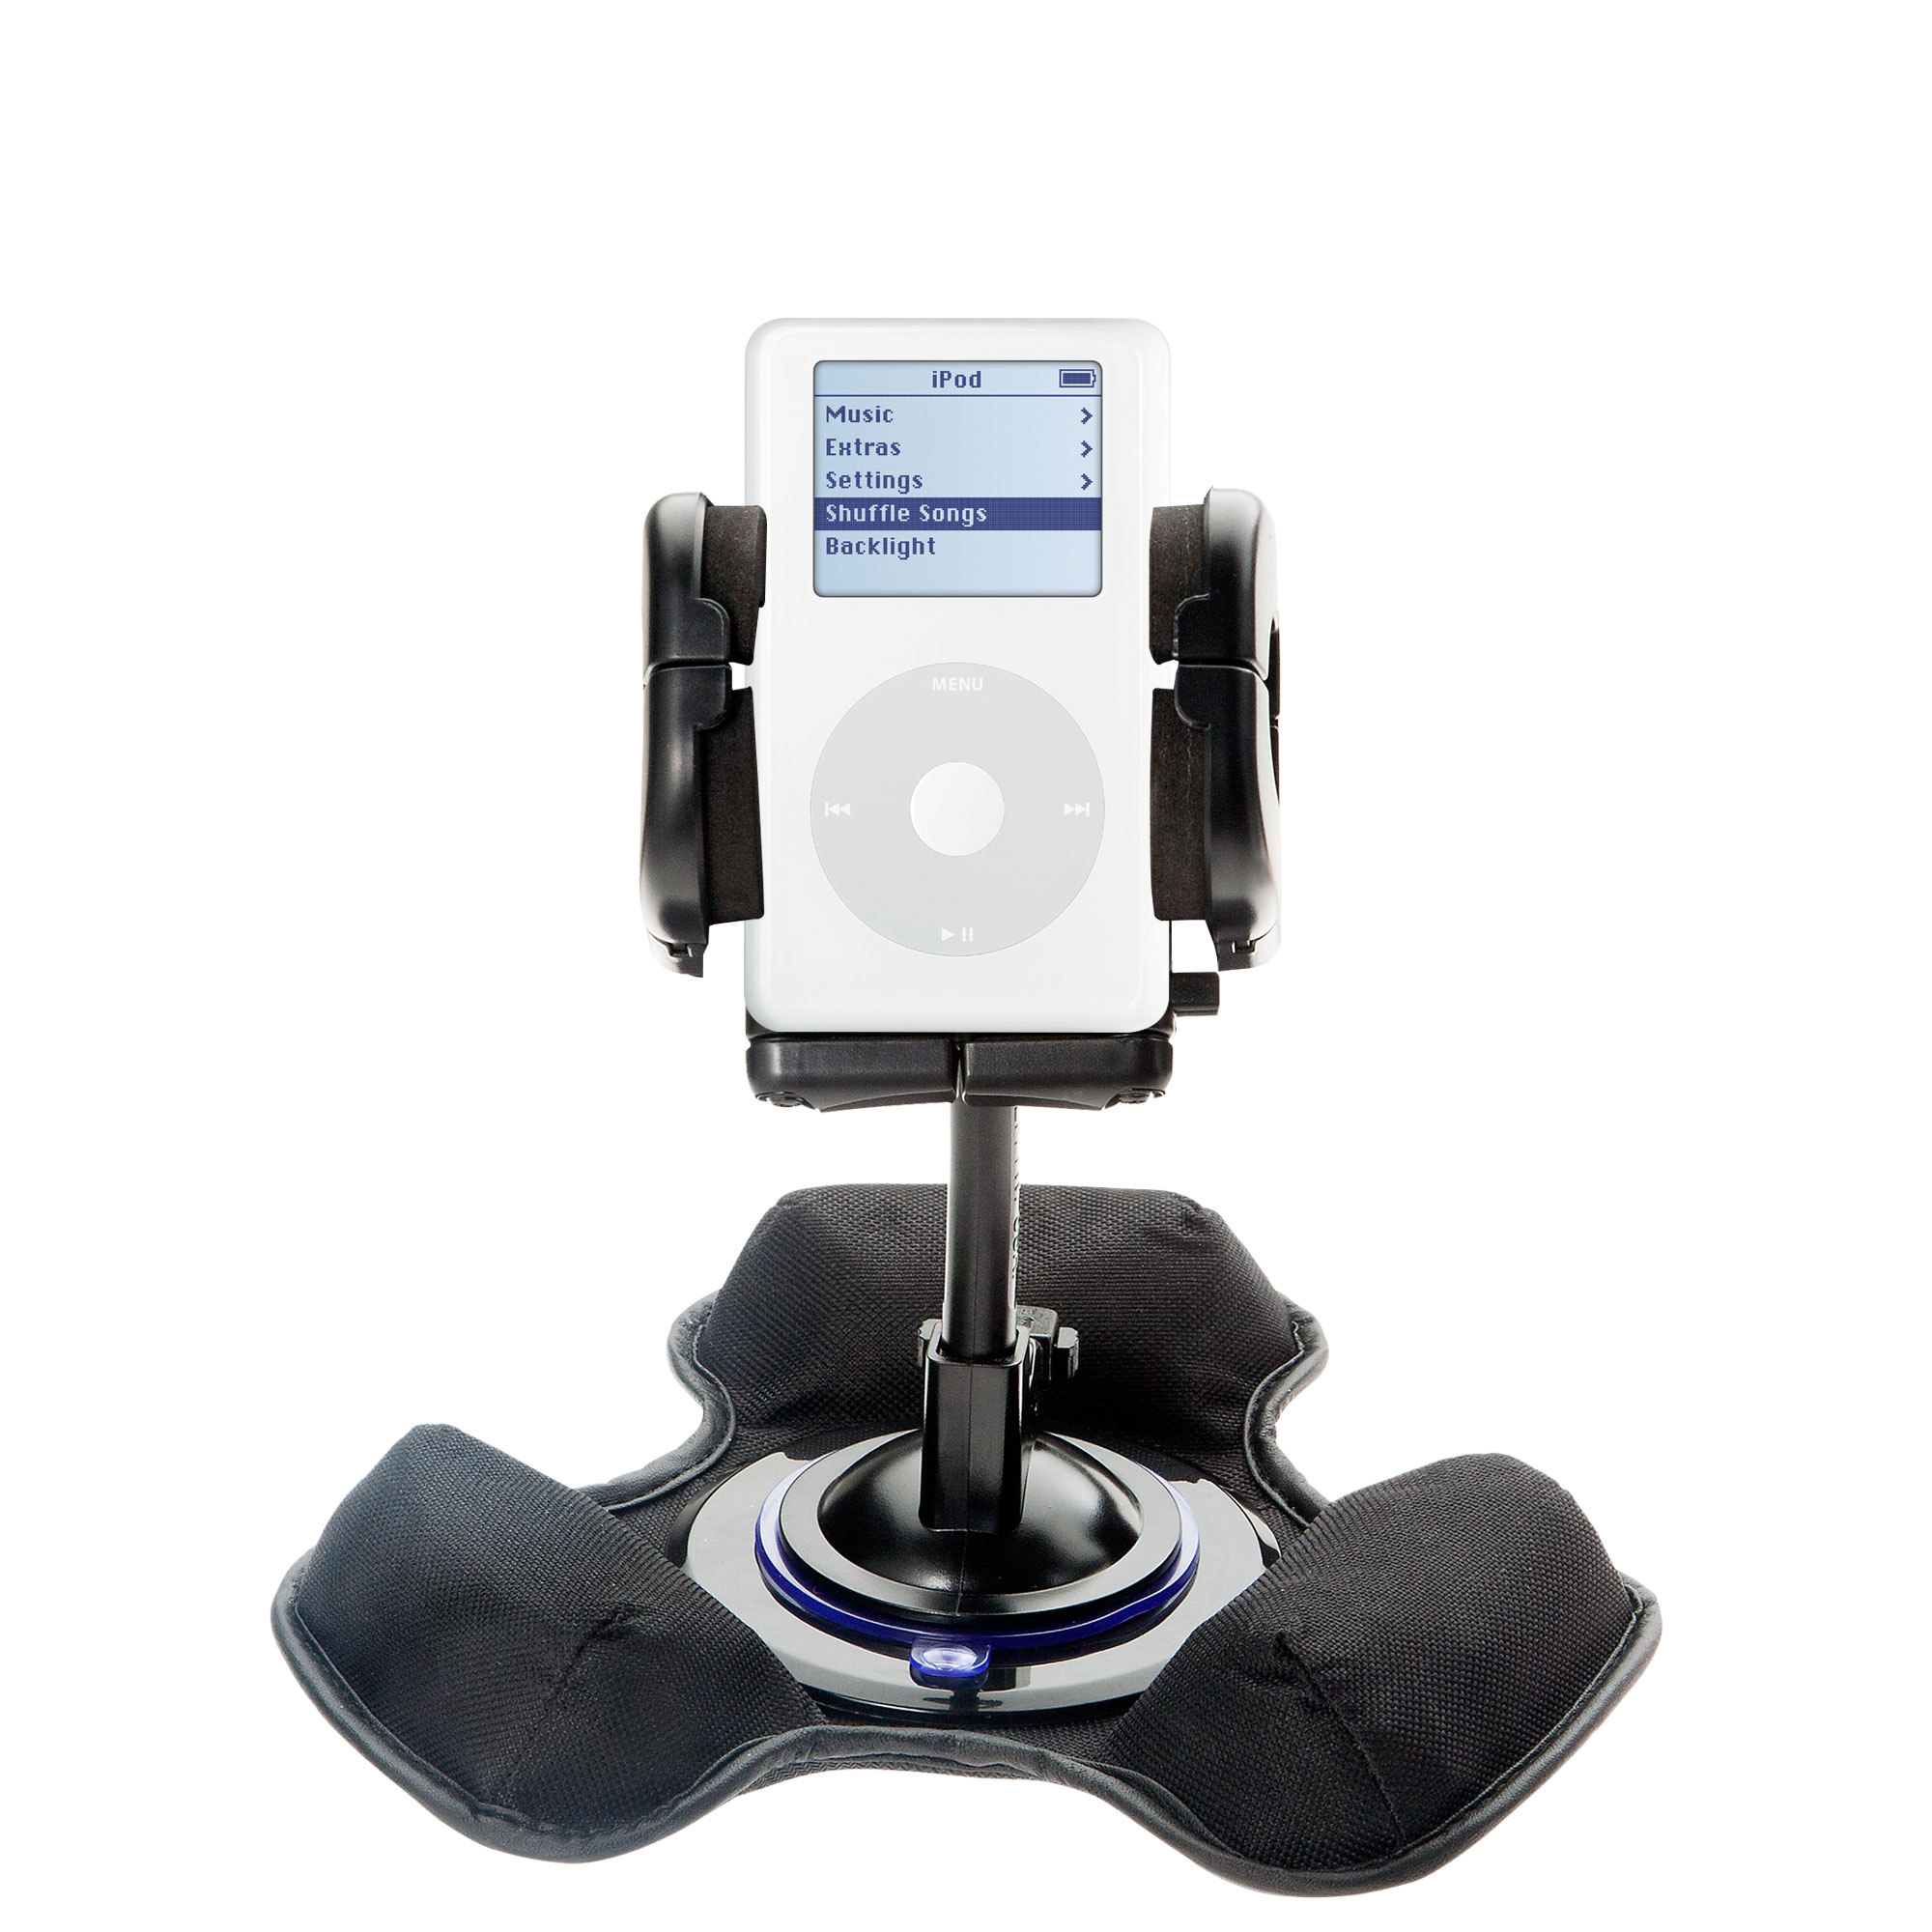 Car / Truck Vehicle Holder Mounting System for Apple iPod 4G (20GB) Includes Unique Flexible Windshield Suction and Universal Dashboard Mount Options